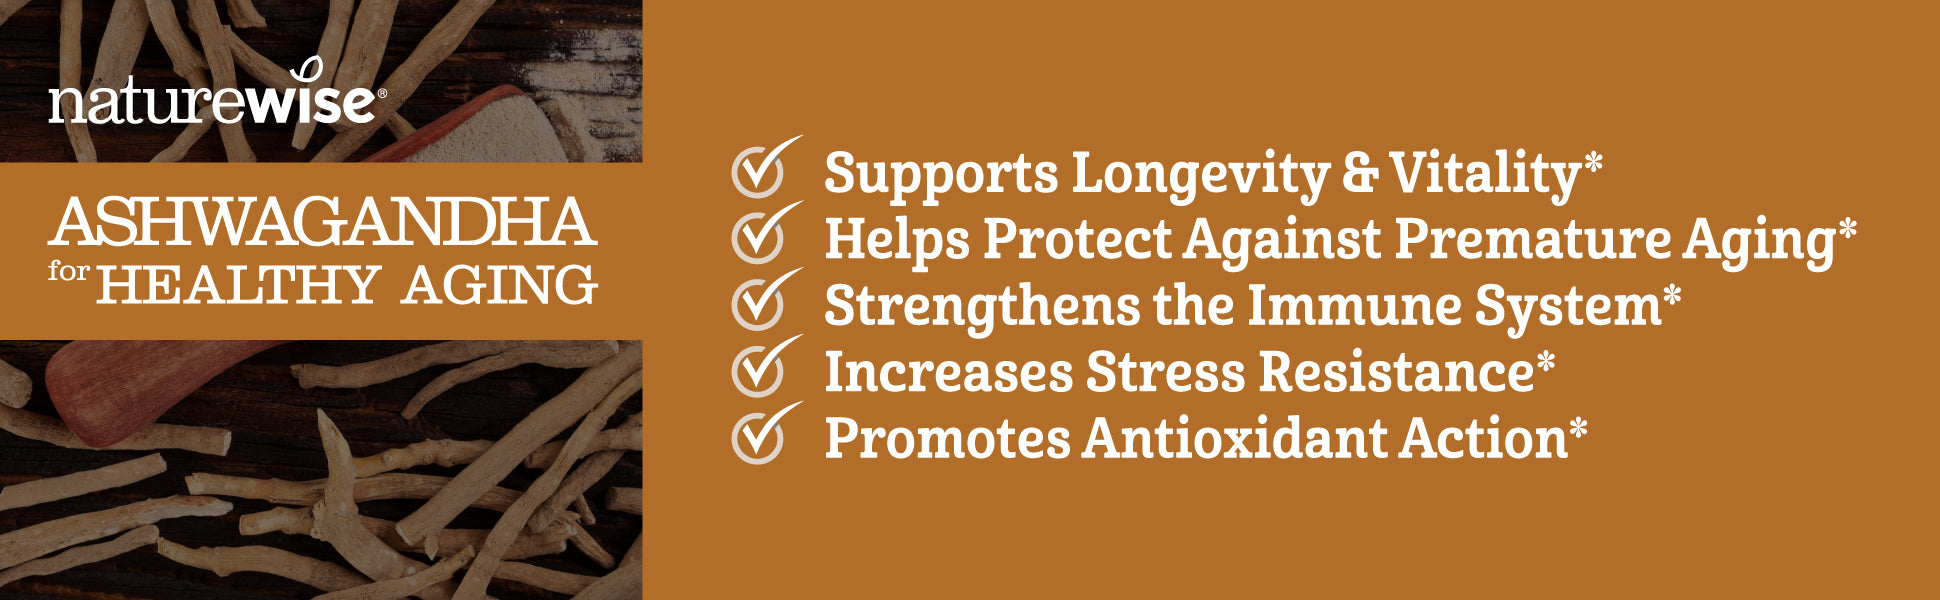 Supports Longevity and Vitality